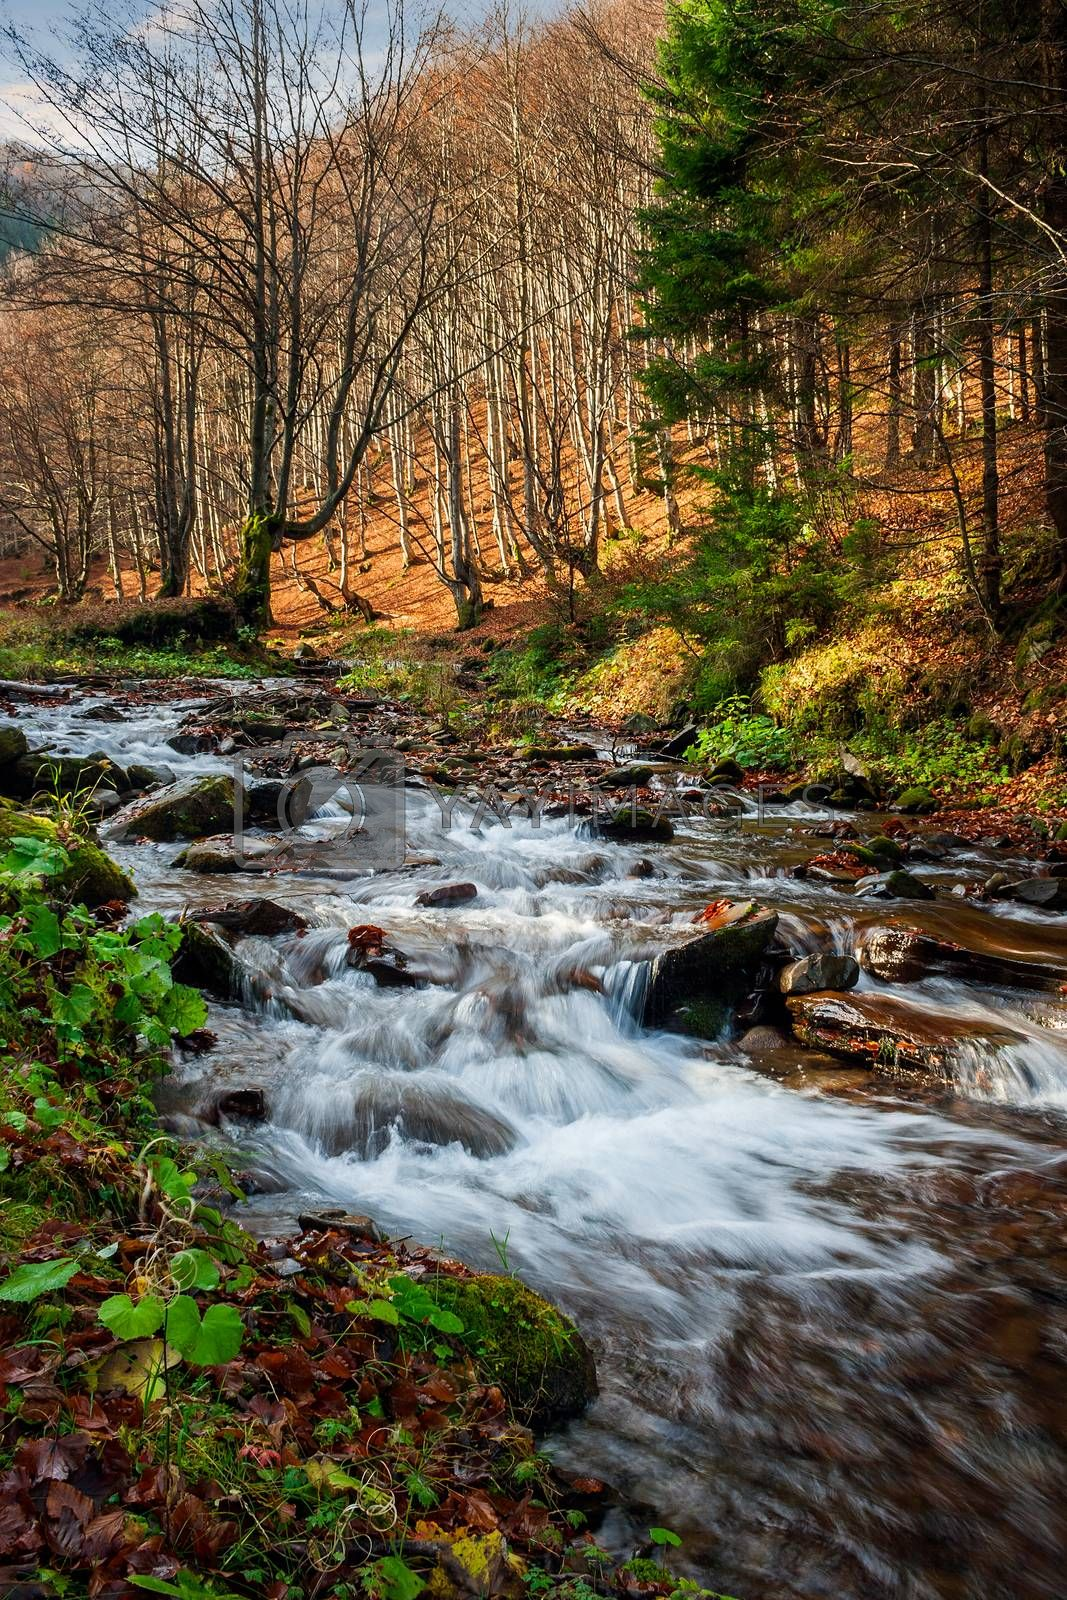 forest river with stones and moss by Pellinni